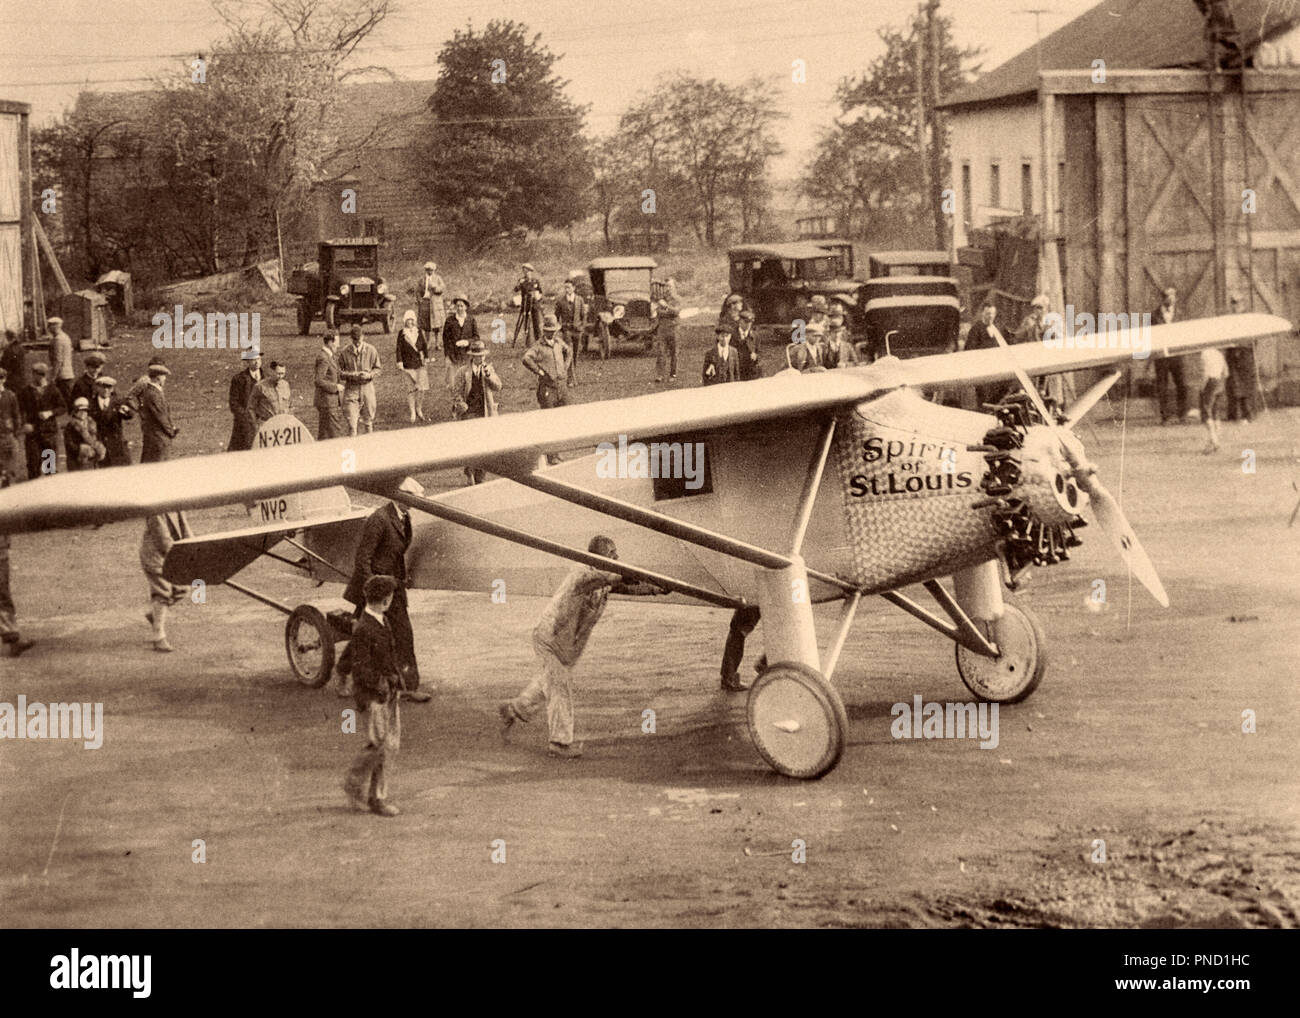 Louis airplane on a grass landing field Lindbergh Photo Print Spirit of St